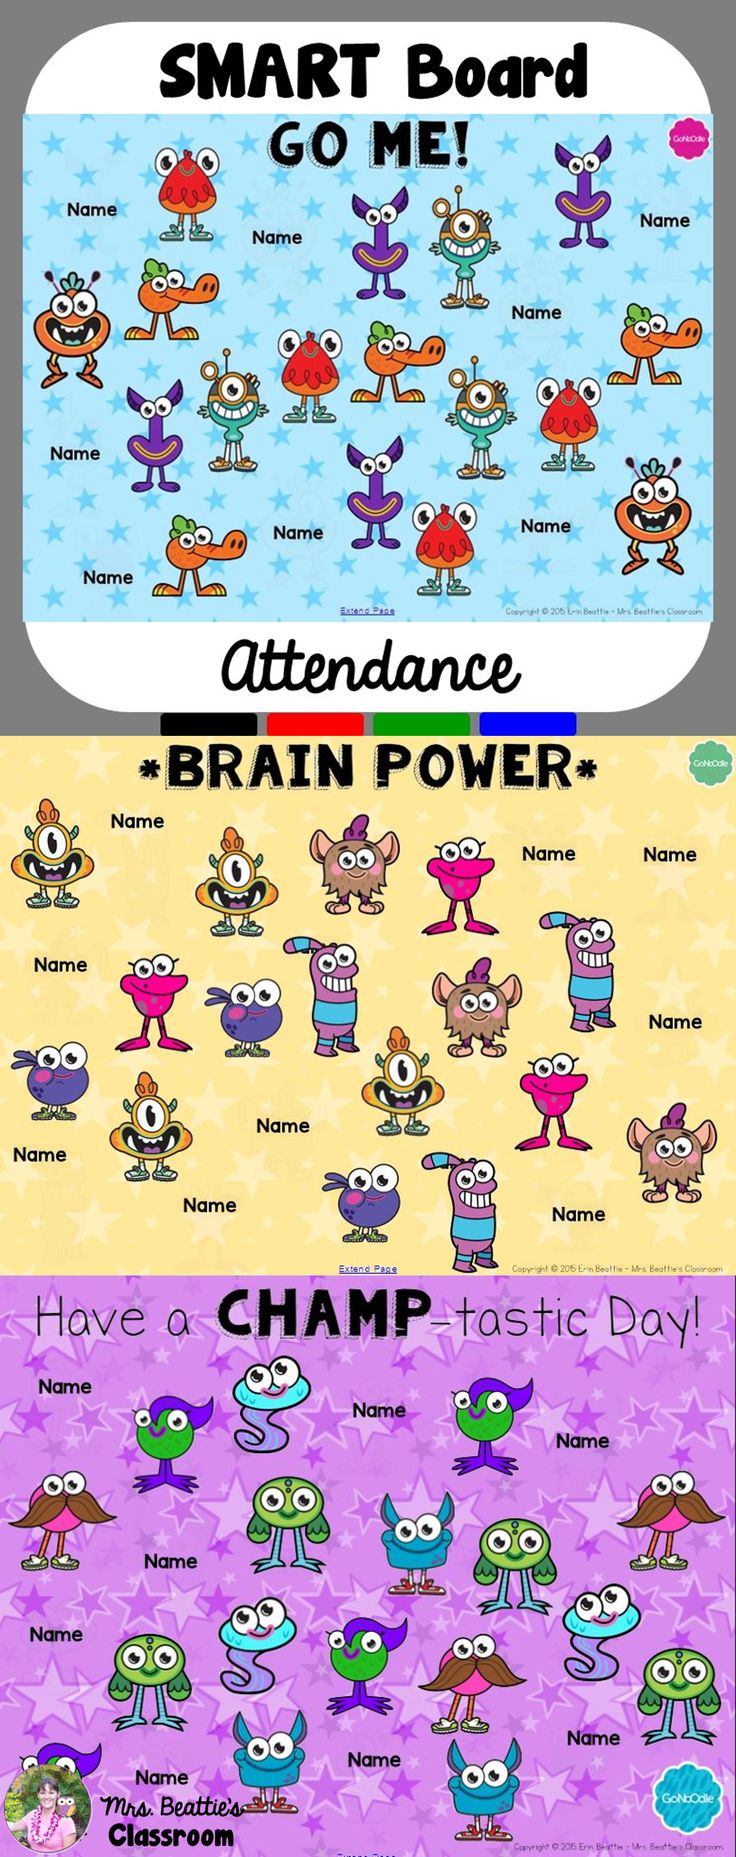 Get your attendance routine organized with these FREE GoNoodle attendance files for your SMART Board! It is a fun, interactive way to check which of your students are present and which are absent! #smartboard #gonoodle #attendance #free